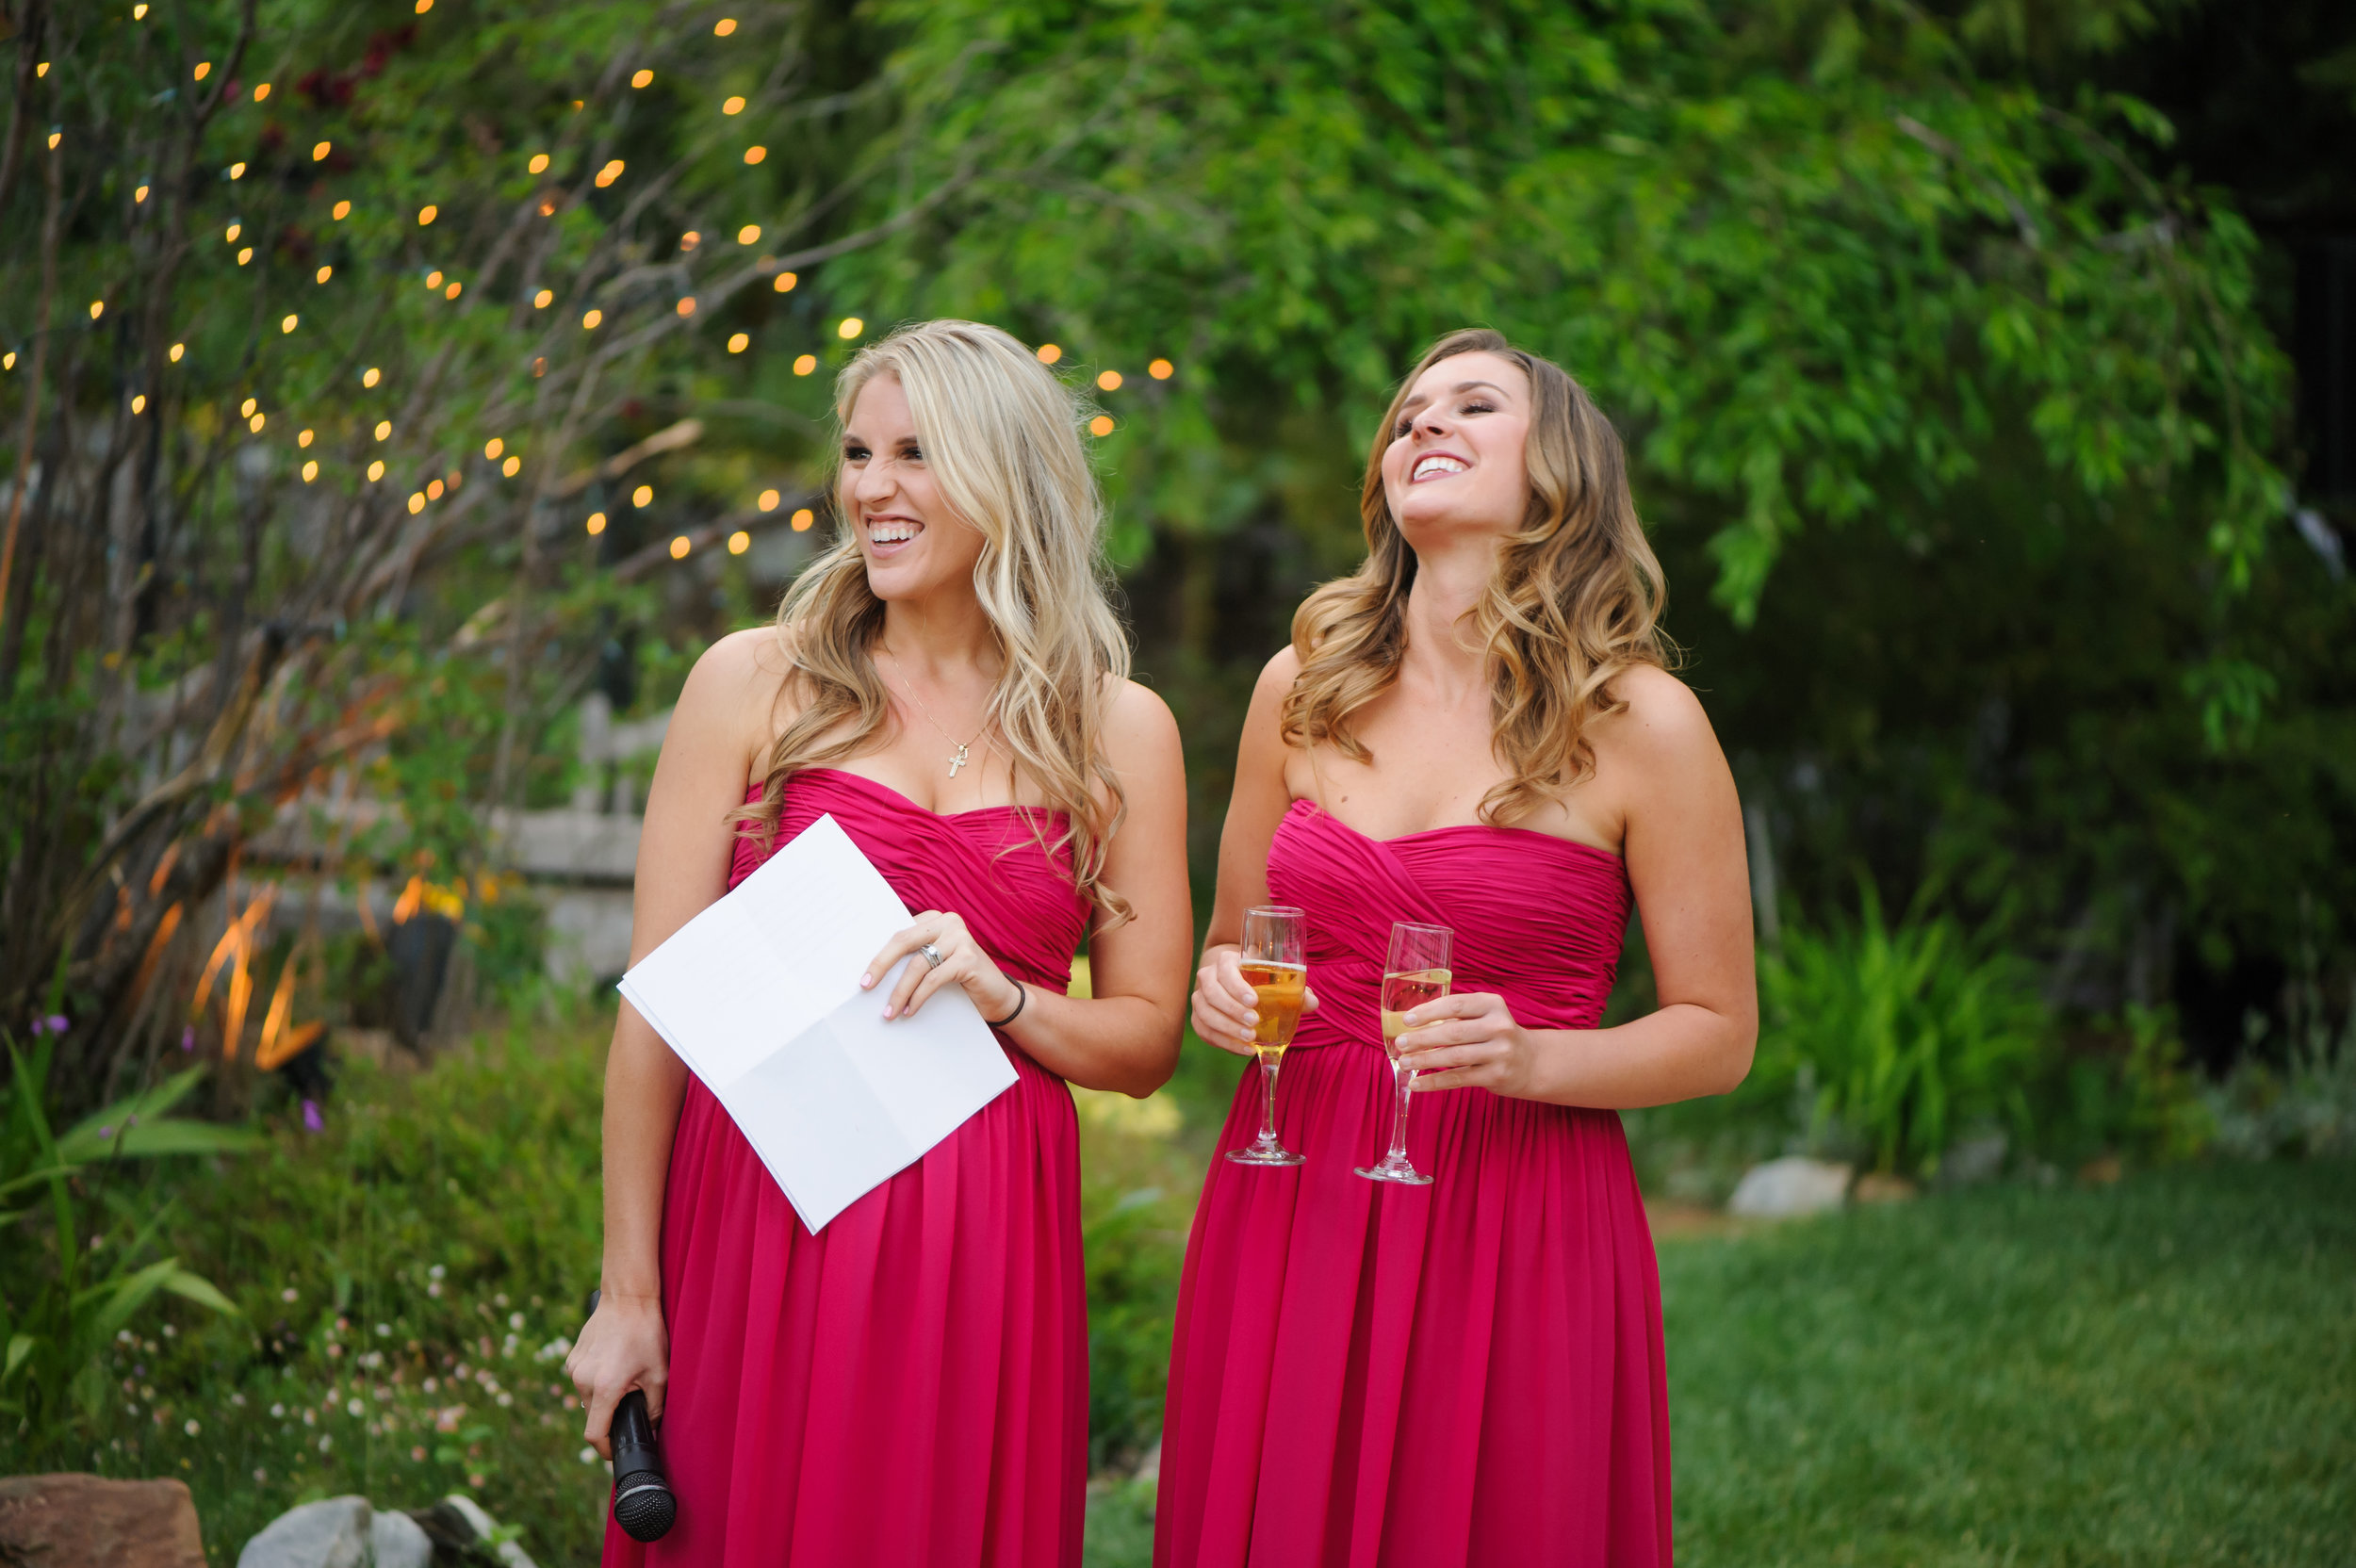 lindsey-charlie-079-monte-verde-inn-foresthill-wedding-photographer-katherine-nicole-photography.JPG